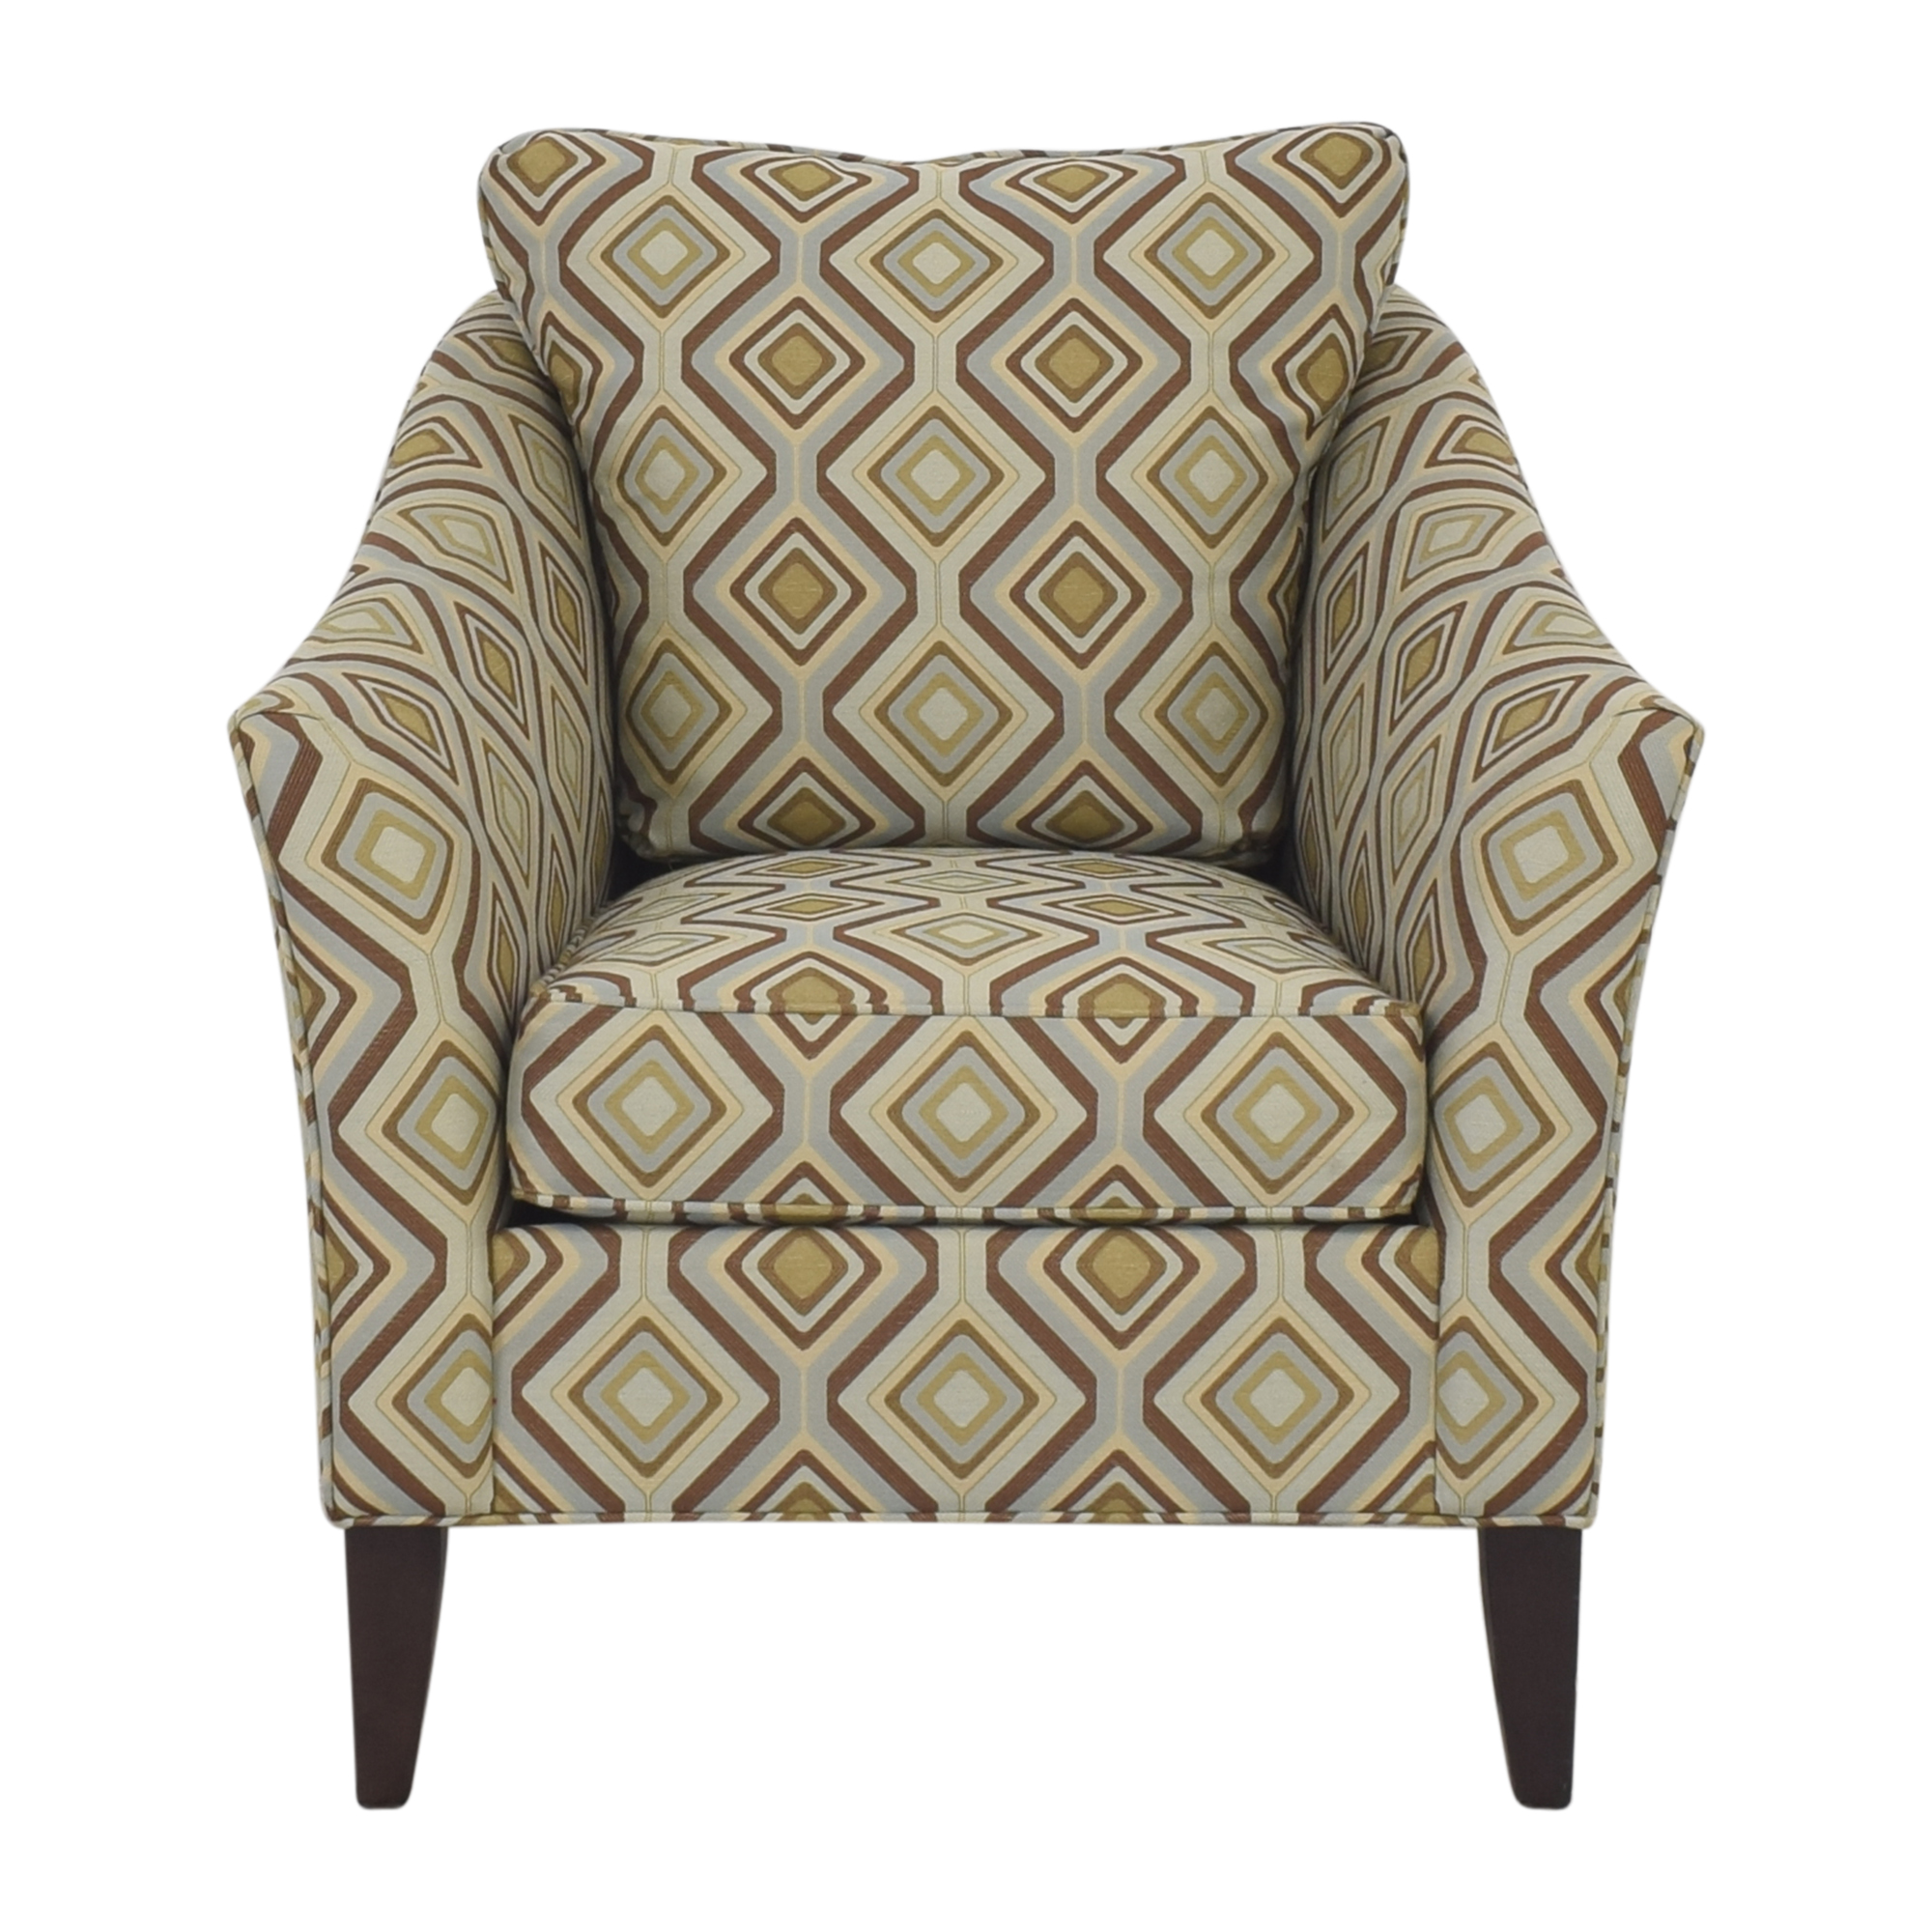 Ethan Allen Ethan Allen Upholstered Arm Chair coupon